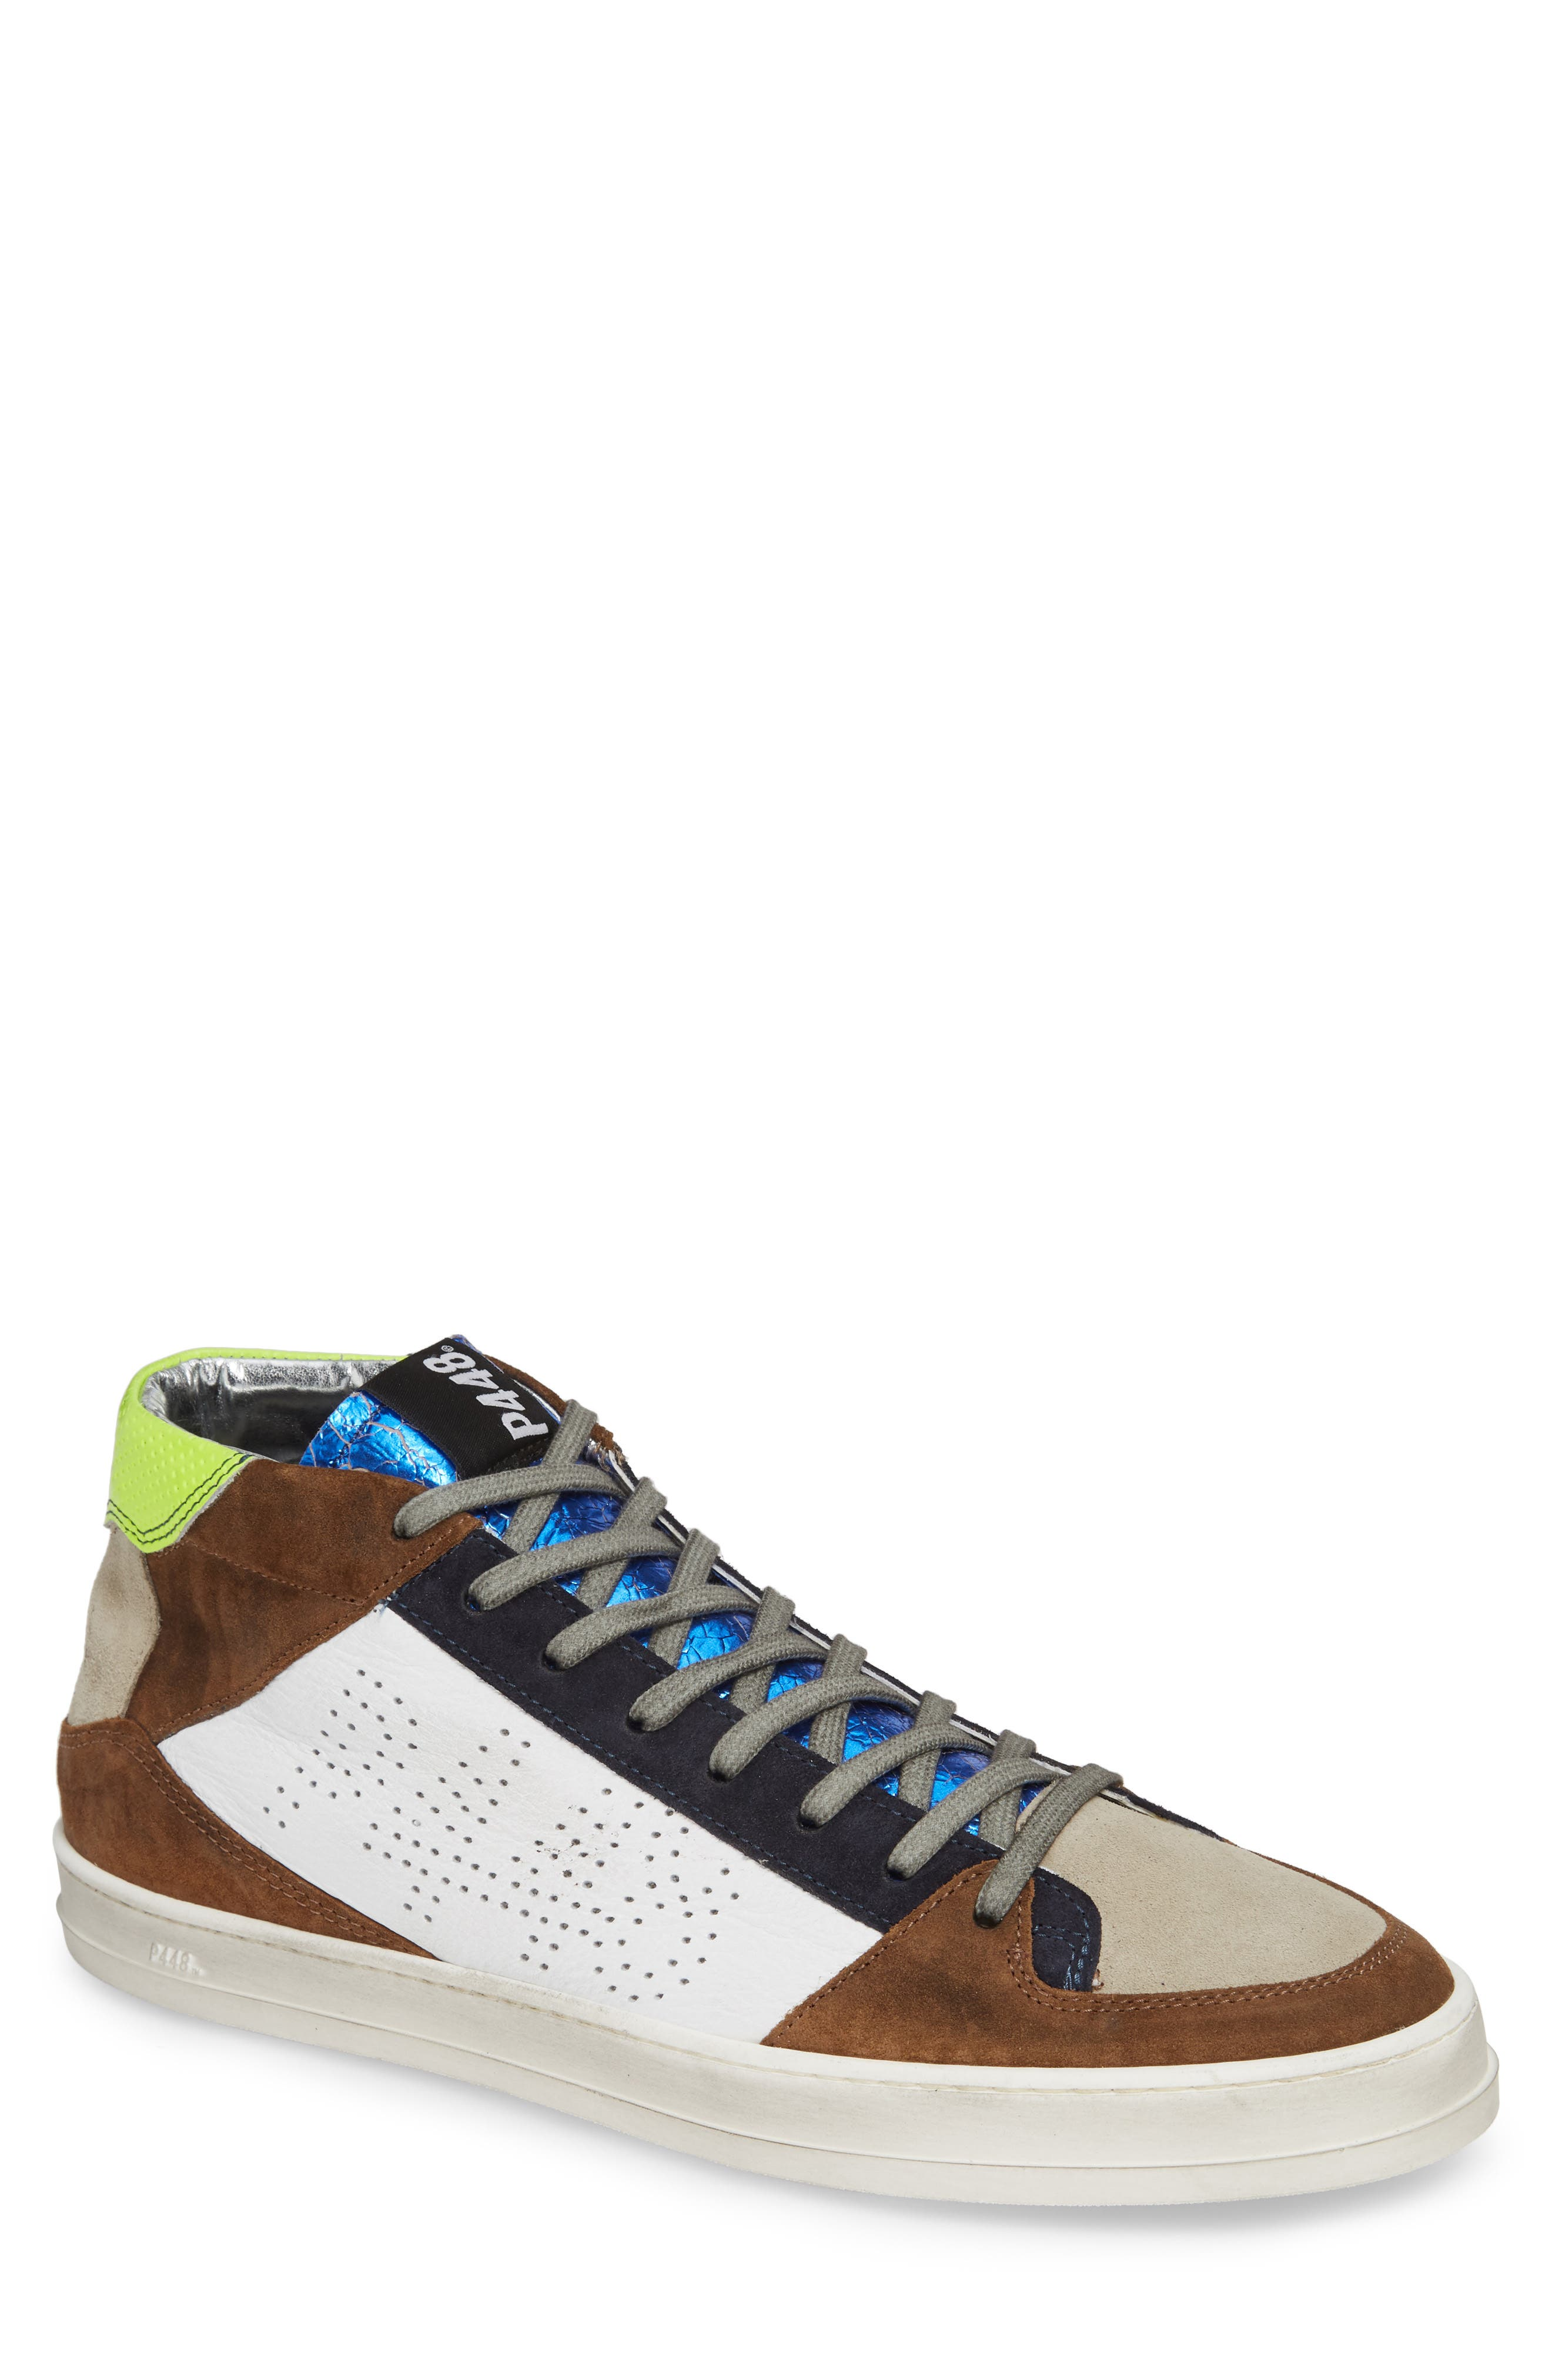 A8Queens Mid Top Sneaker,                         Main,                         color, YELLOW